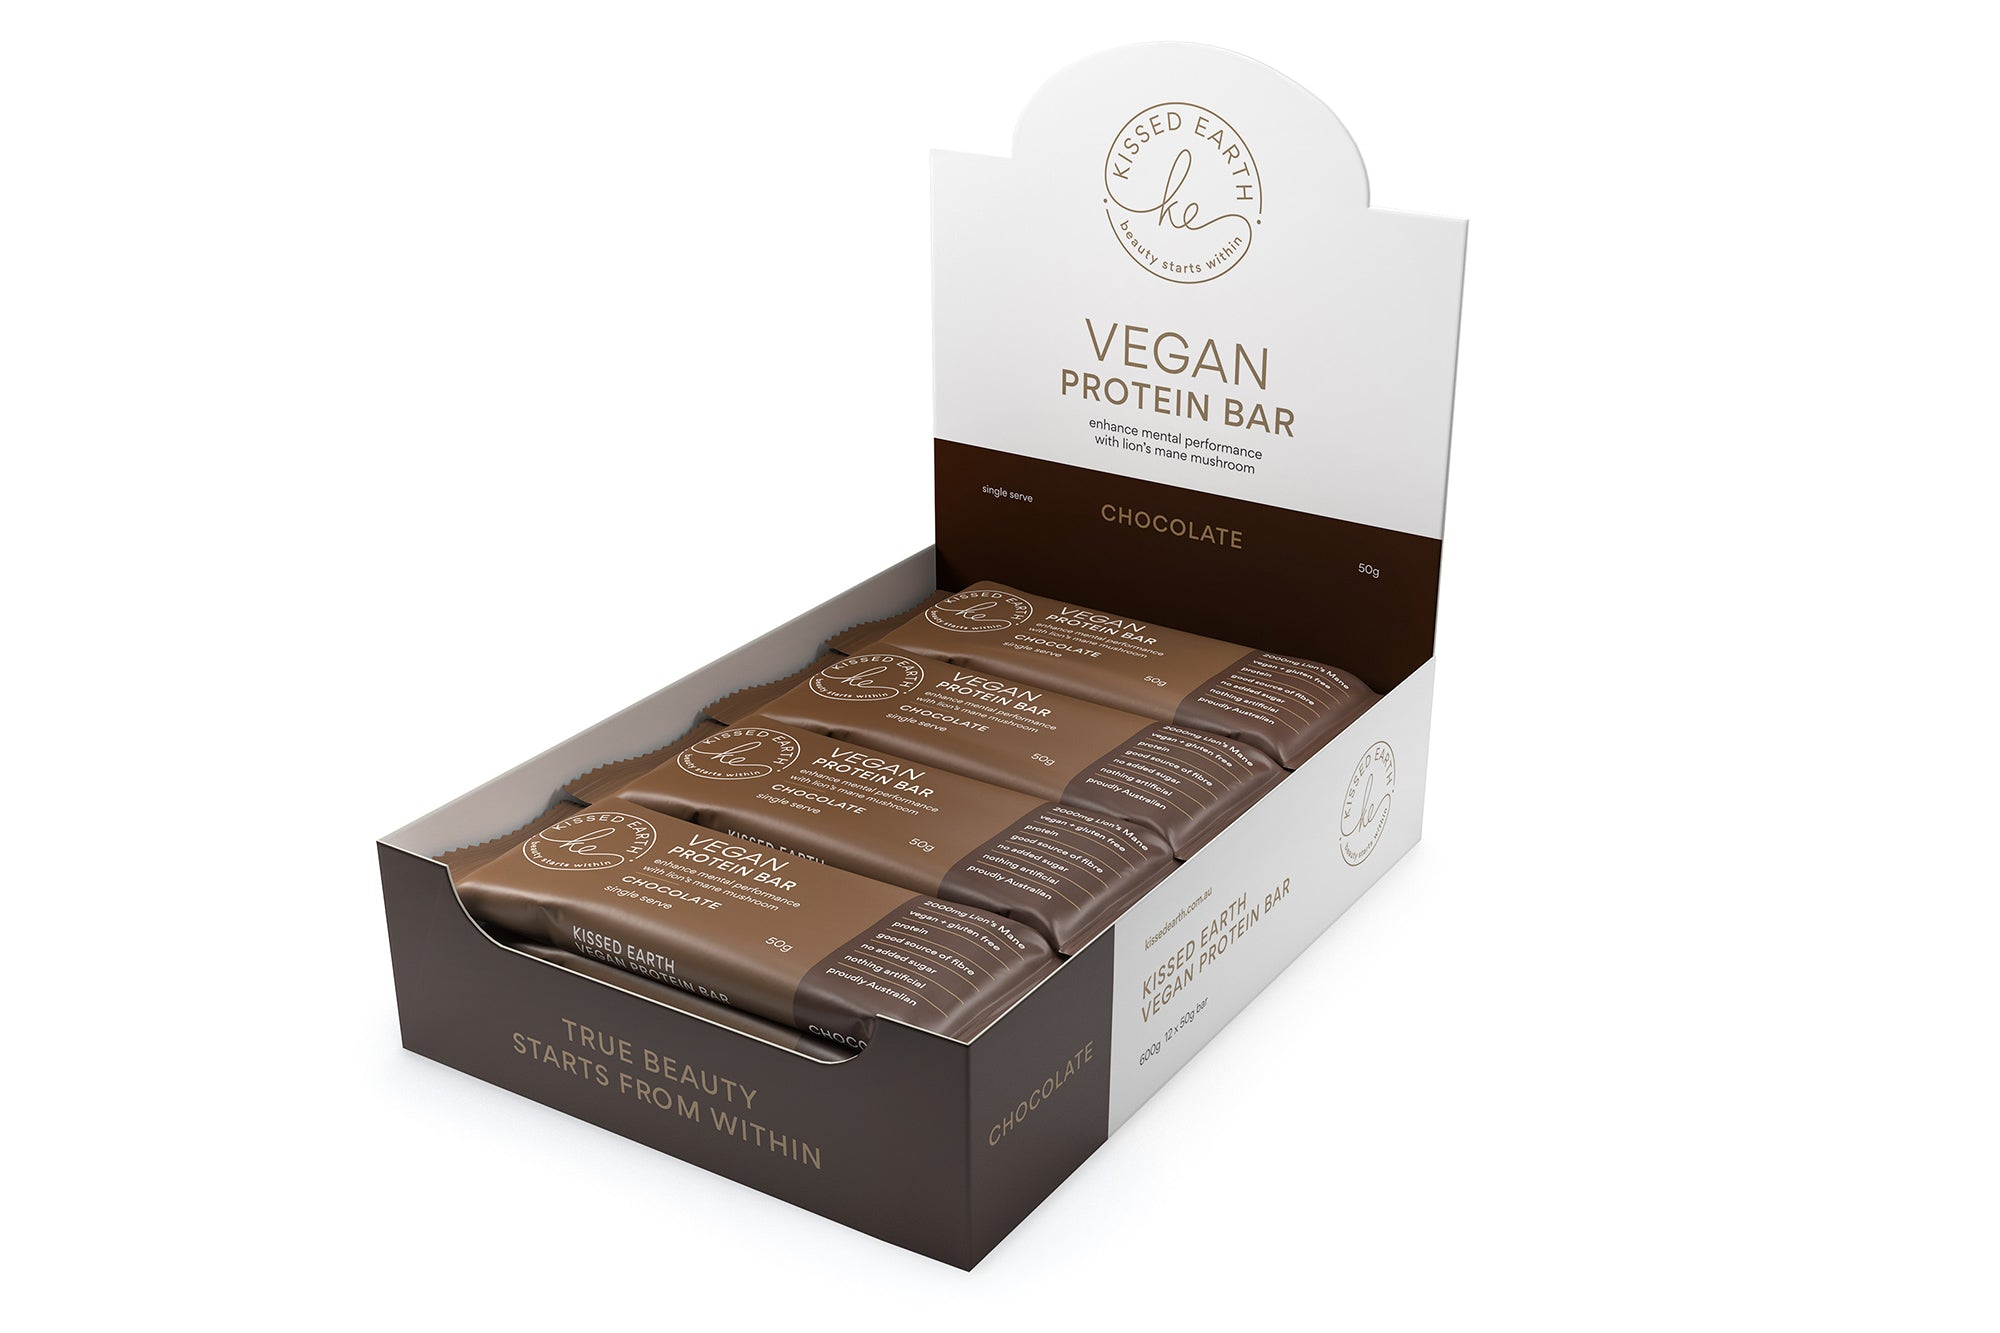 Vegan Protein Bar - Chocolate